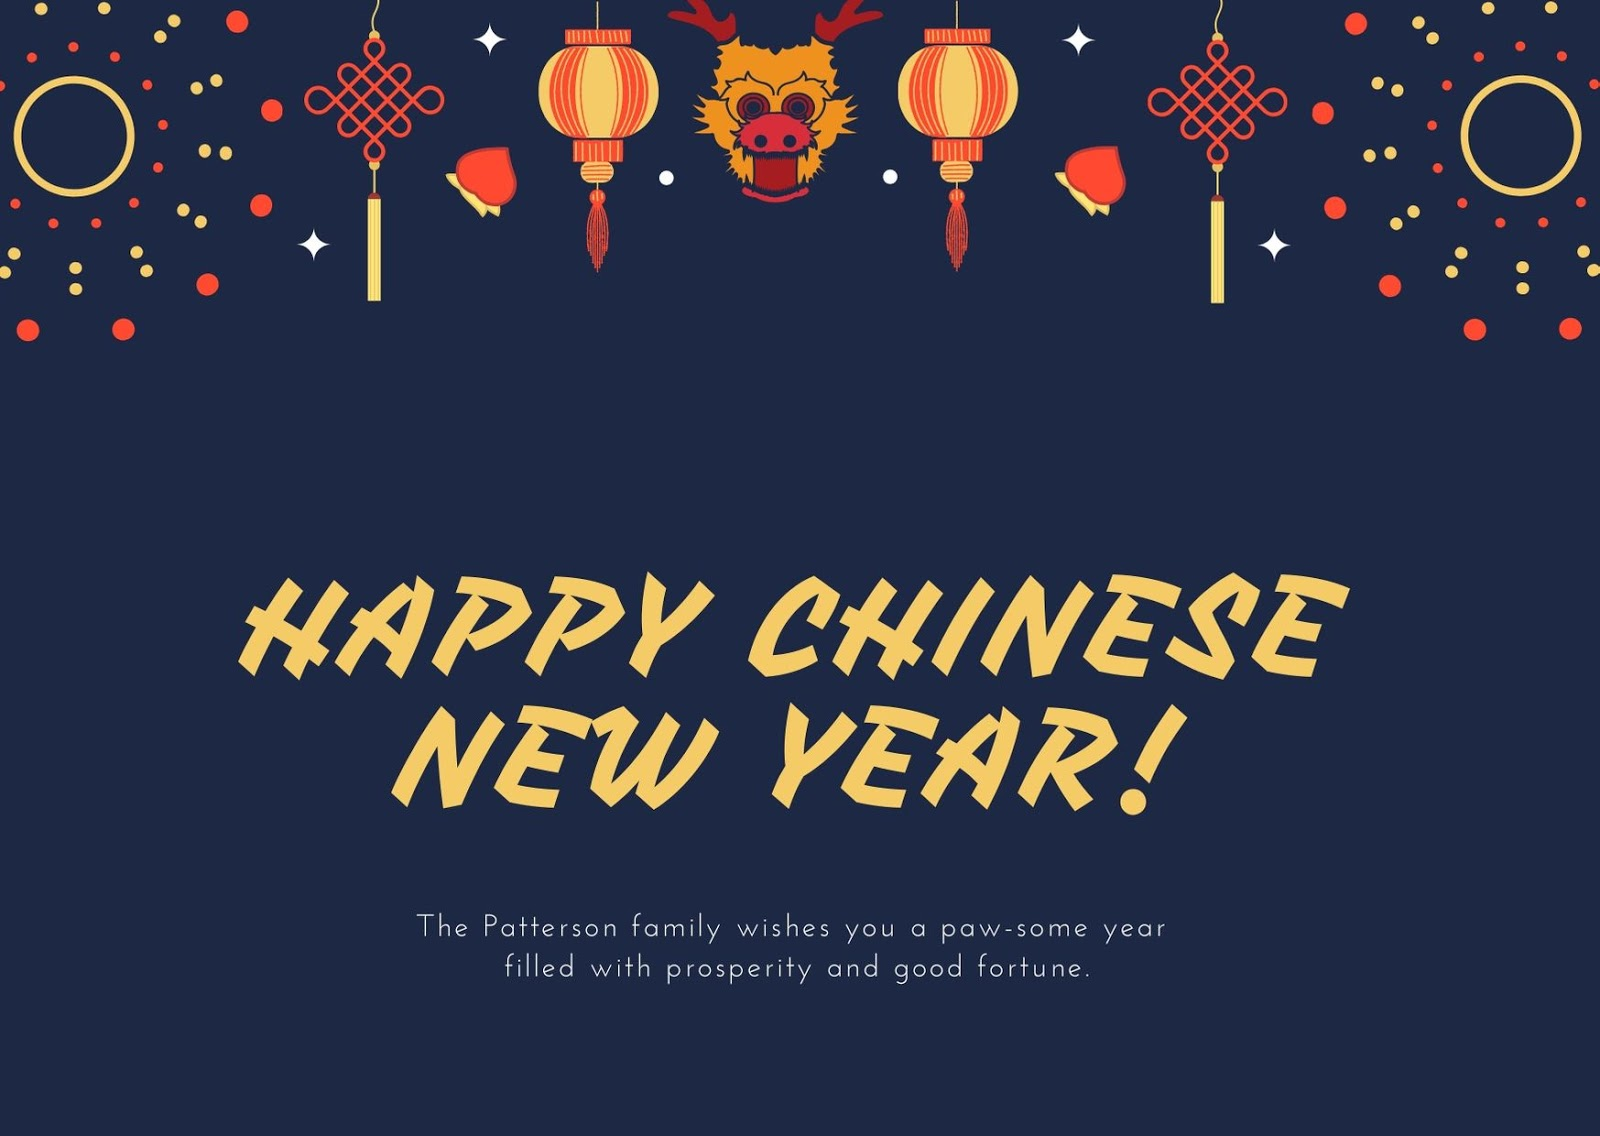 Happy Chinese New Year 12 February 2021 Download Images Photos Greeting Cards 365 Festivals Everyday Is A Festival